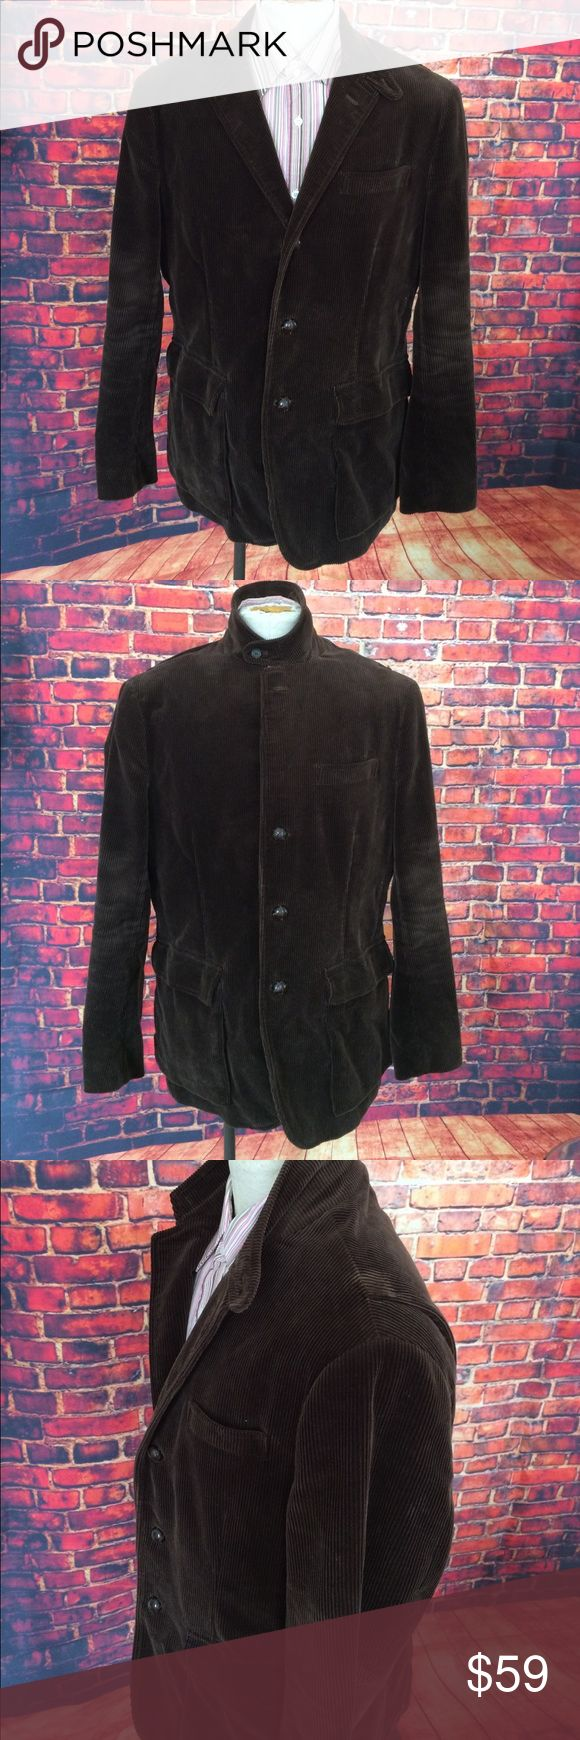 POLO by Ralph Lauren Brown Corduroy Jacket Size L POLO by Ralph Lauren Brown Corduroy Jacket Size L. Worn many times but still has life left. Polo by Ralph Lauren Jackets & Coats